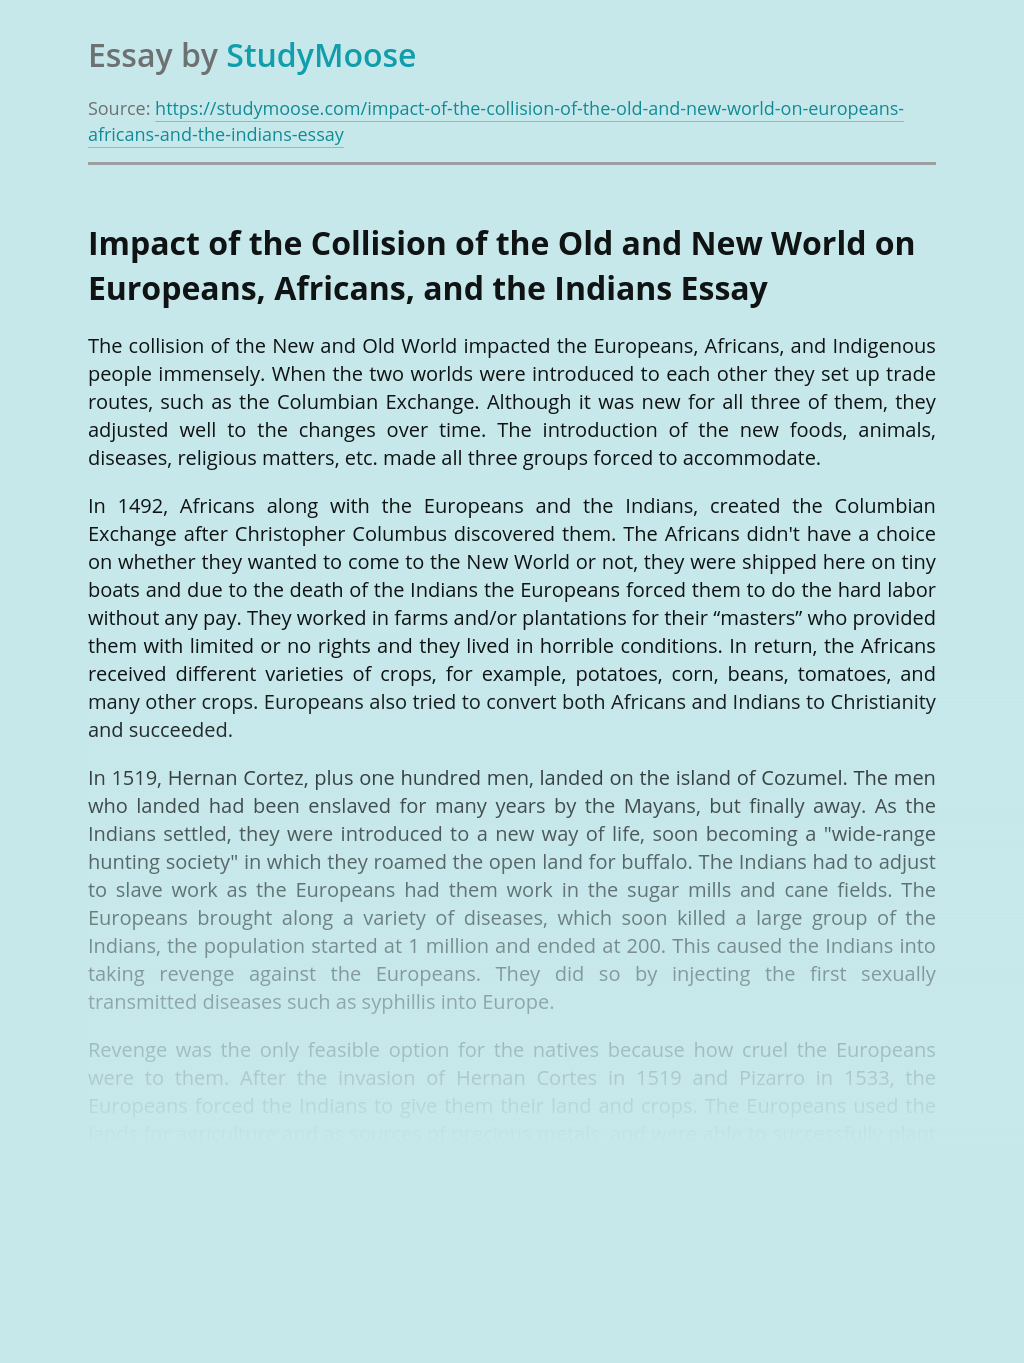 Impact of the Collision of the Old and New World on Europeans, Africans, and the Indians